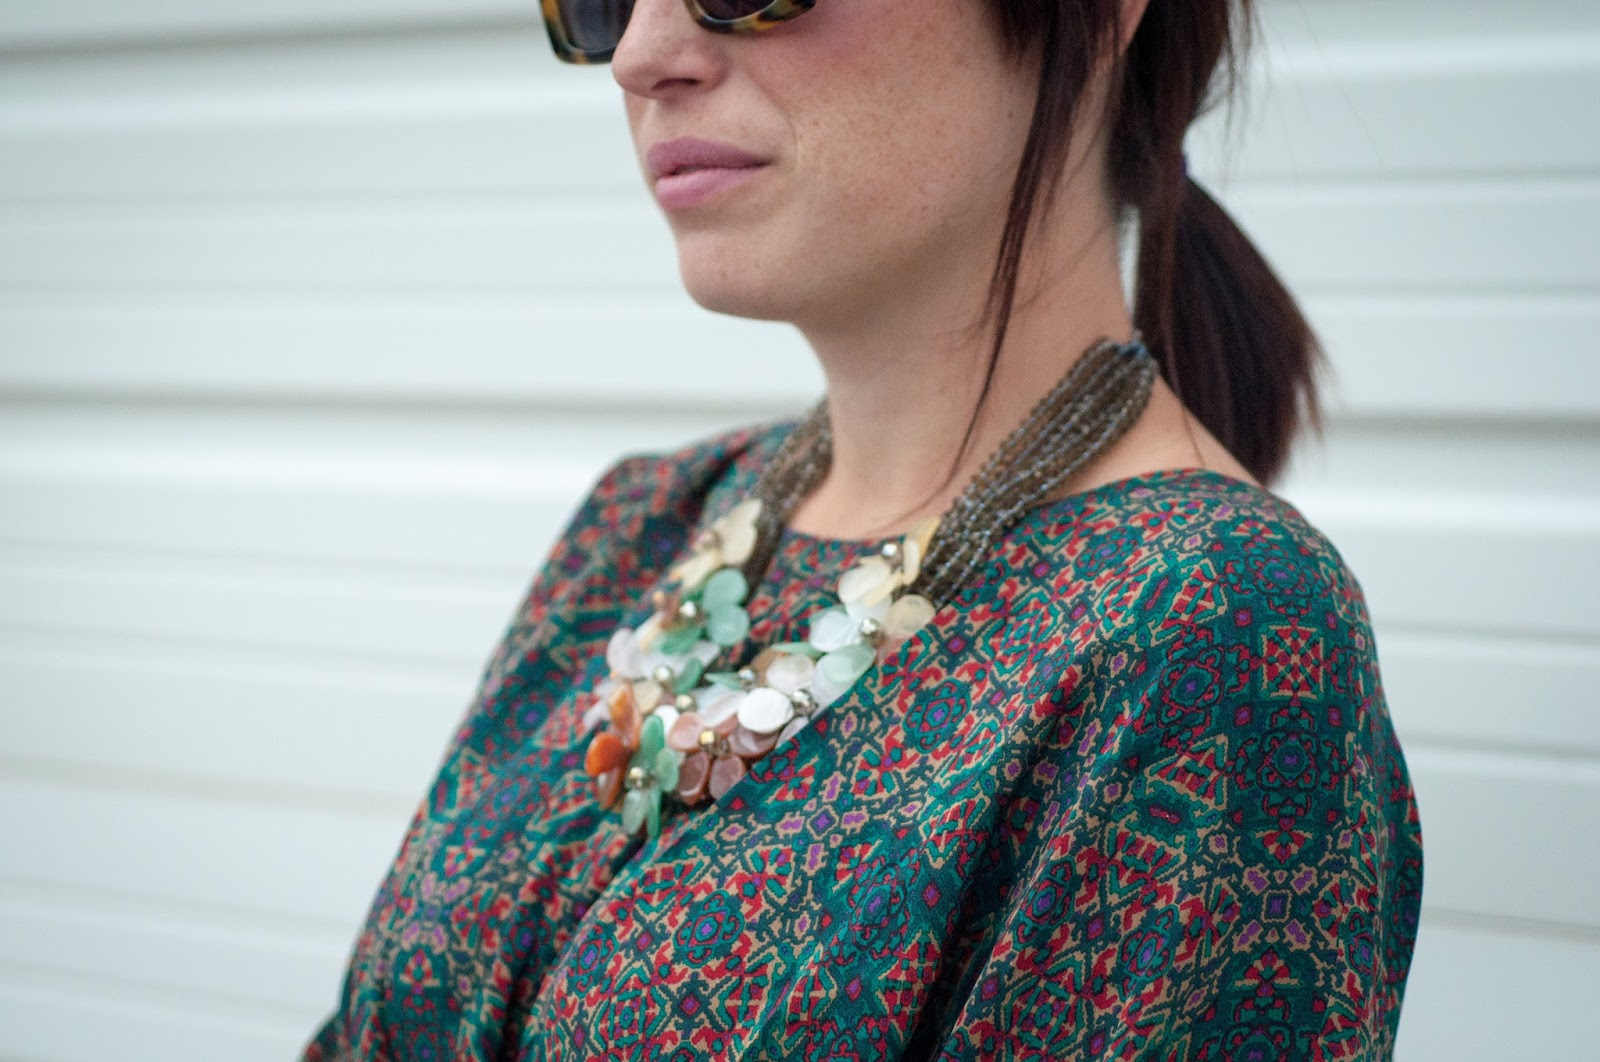 ootd, anthropologie ootd, floral necklace, karen walker sunglasses, karen walker, what i wore